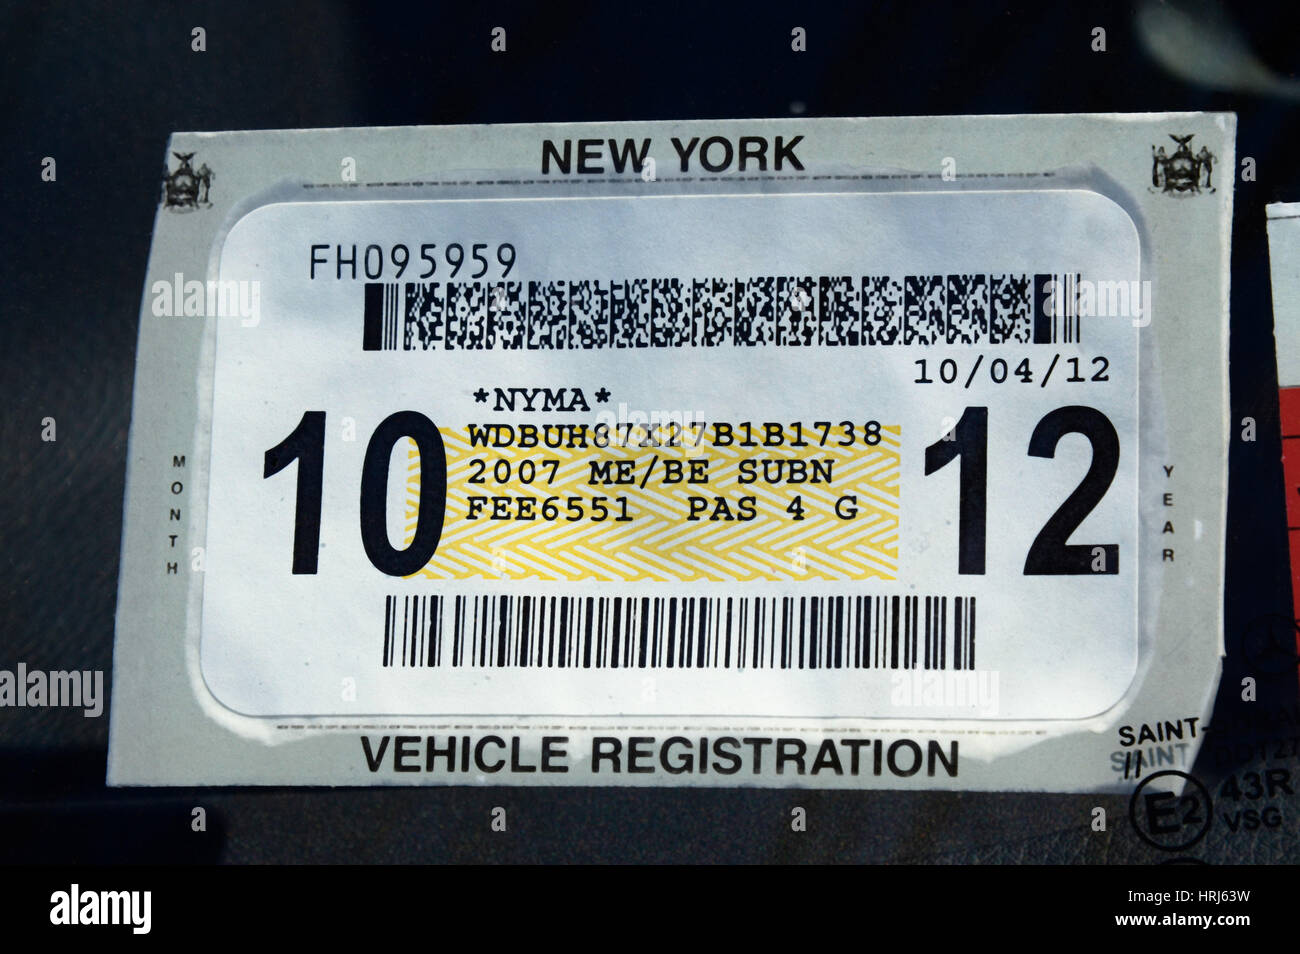 Registering a vehicle in new york vehicle ideas for New york state department of motor vehicles handicap parking permit